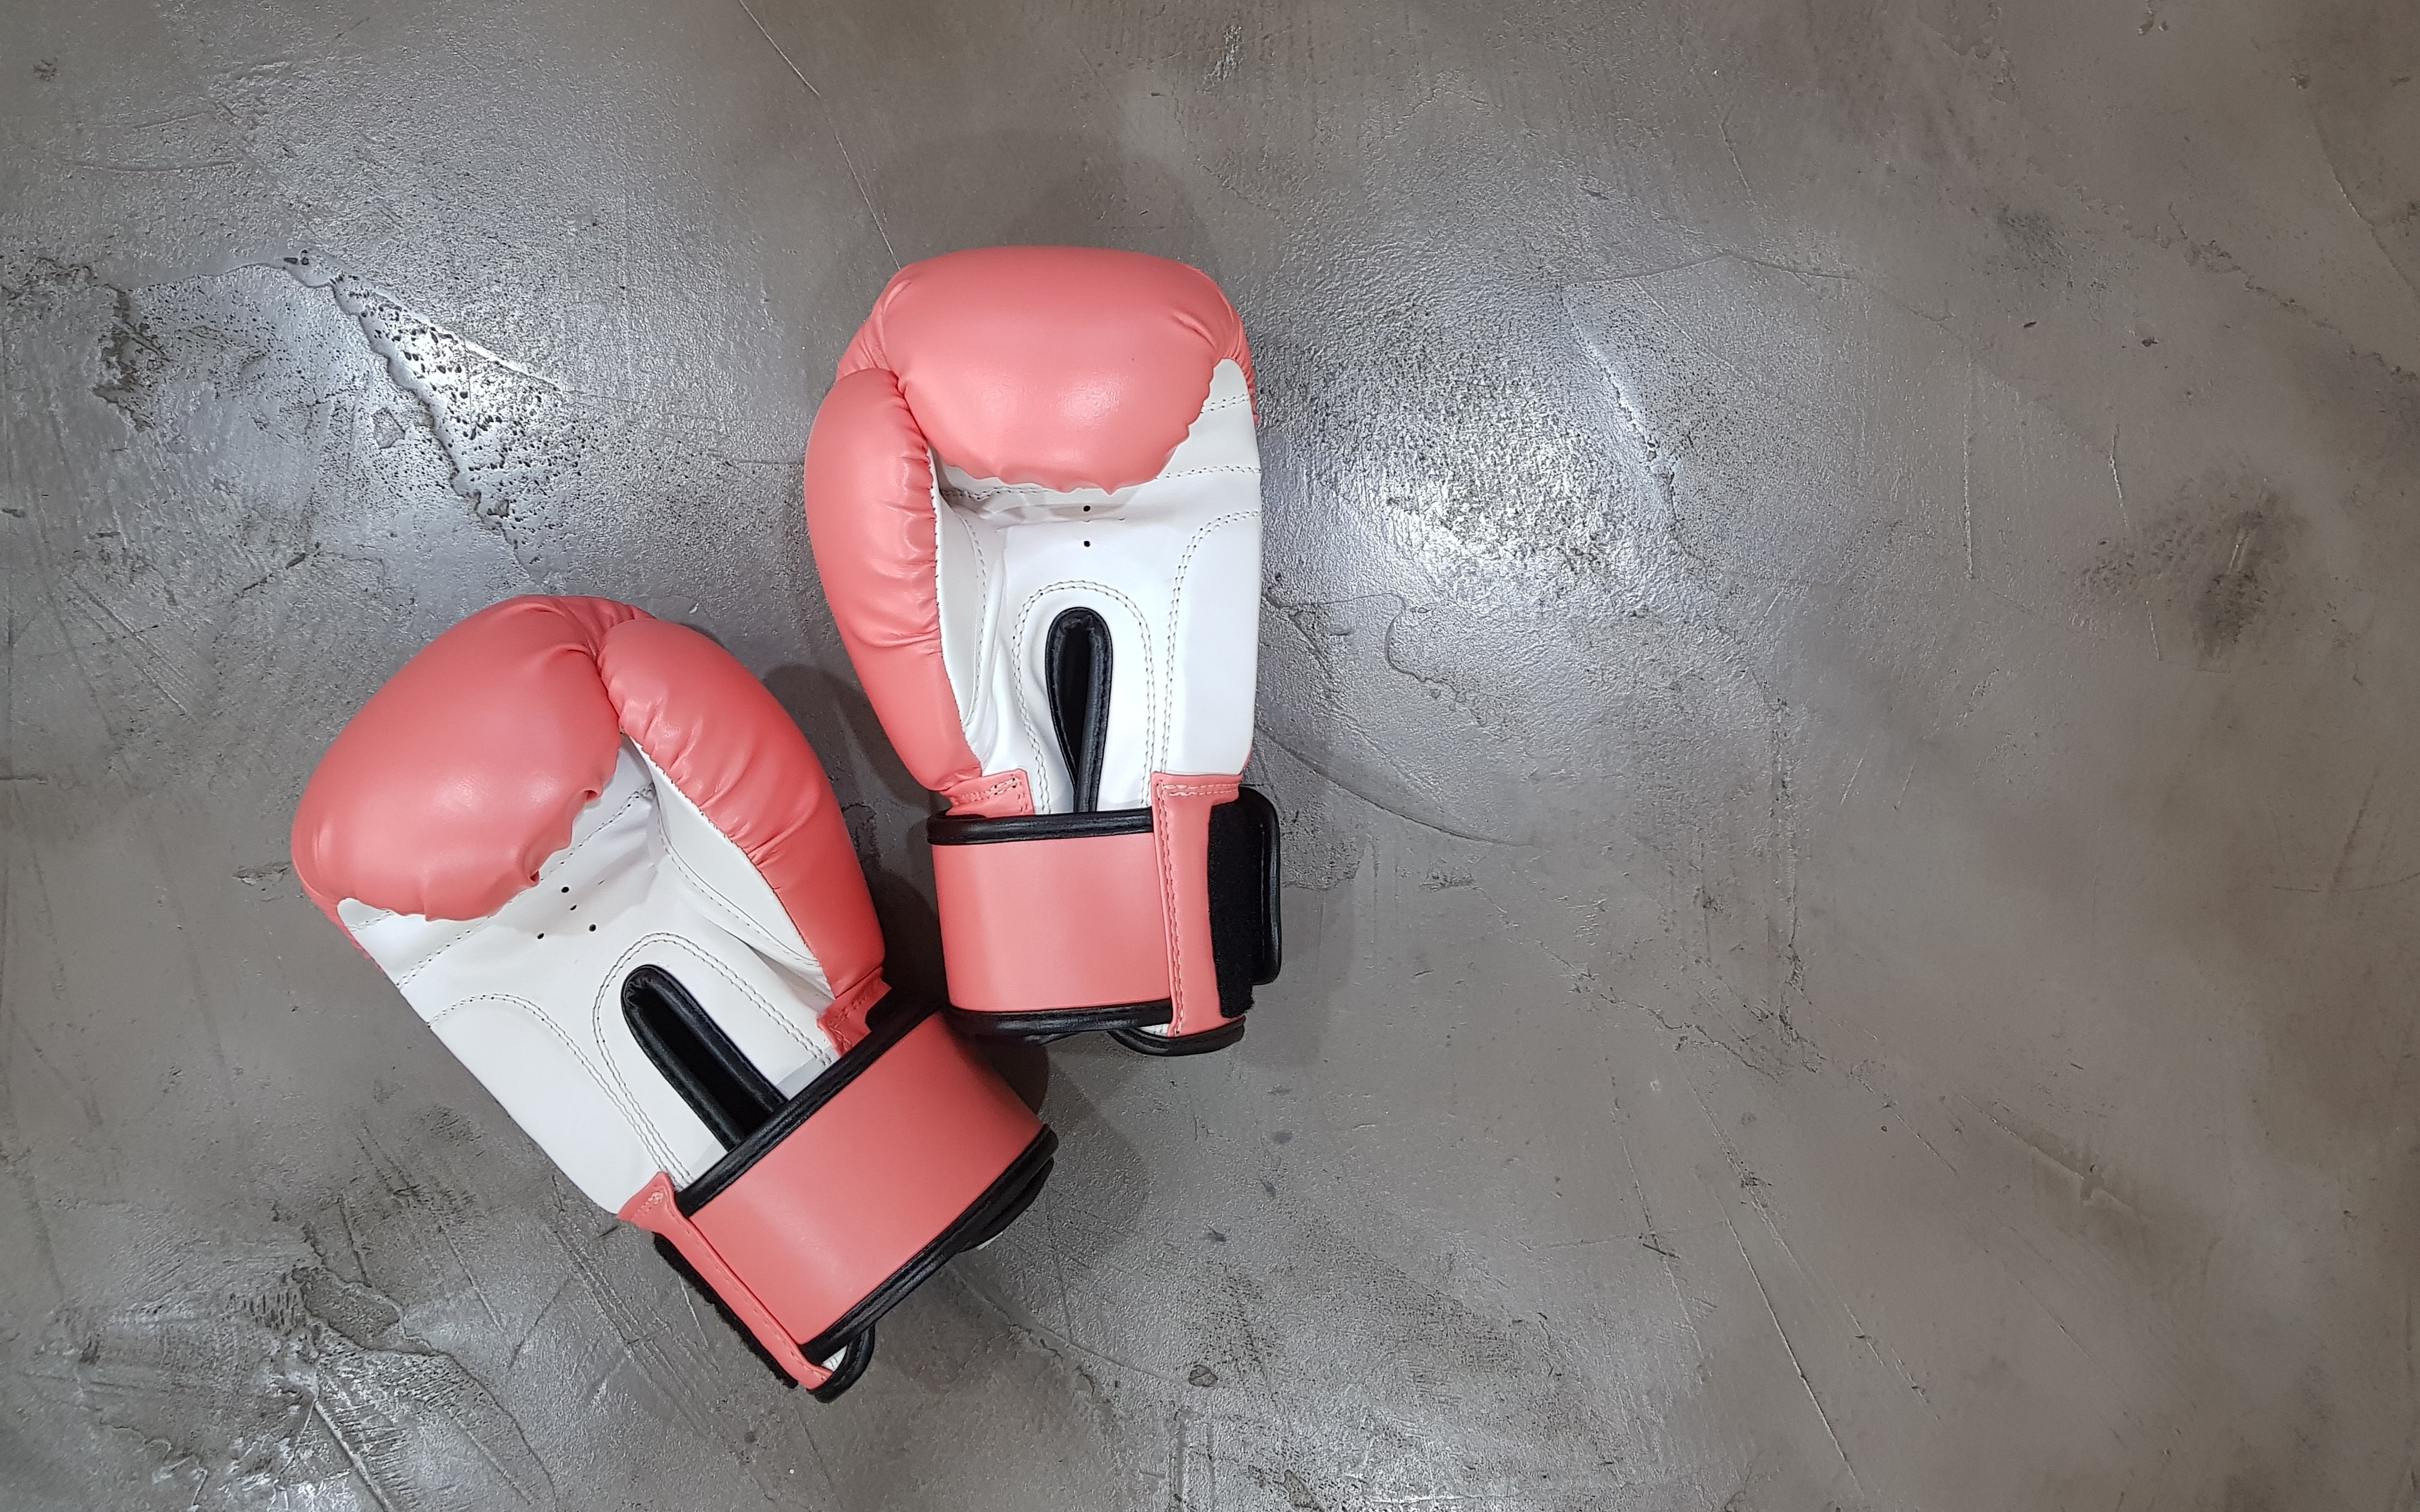 Boxercise: Get fighting fit!